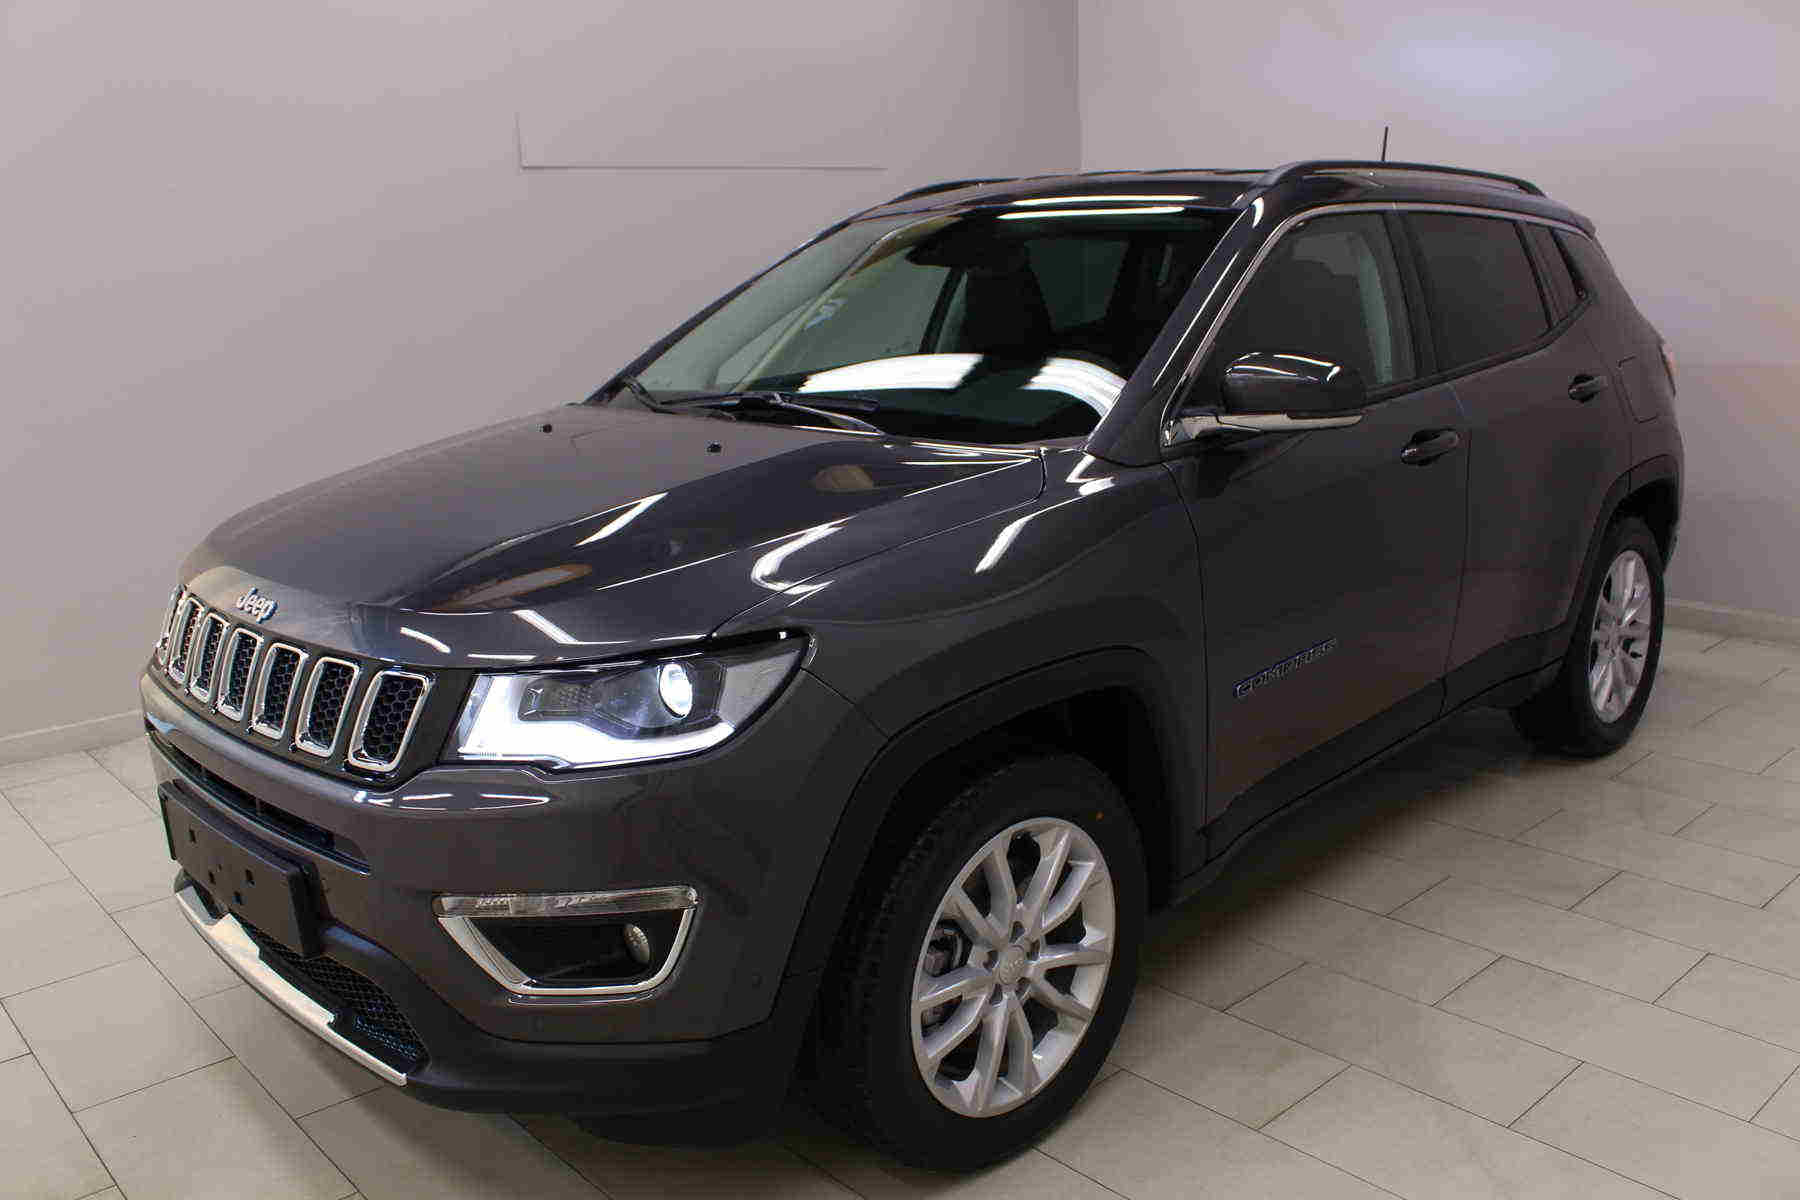 Acheter JEEP Compass 1.3 GSE T4 190 ch PHEV AT6 4xe eAWD Limited Granite Crystal + Pack hiver + Pack style 18 avec options chez un mandataire auto